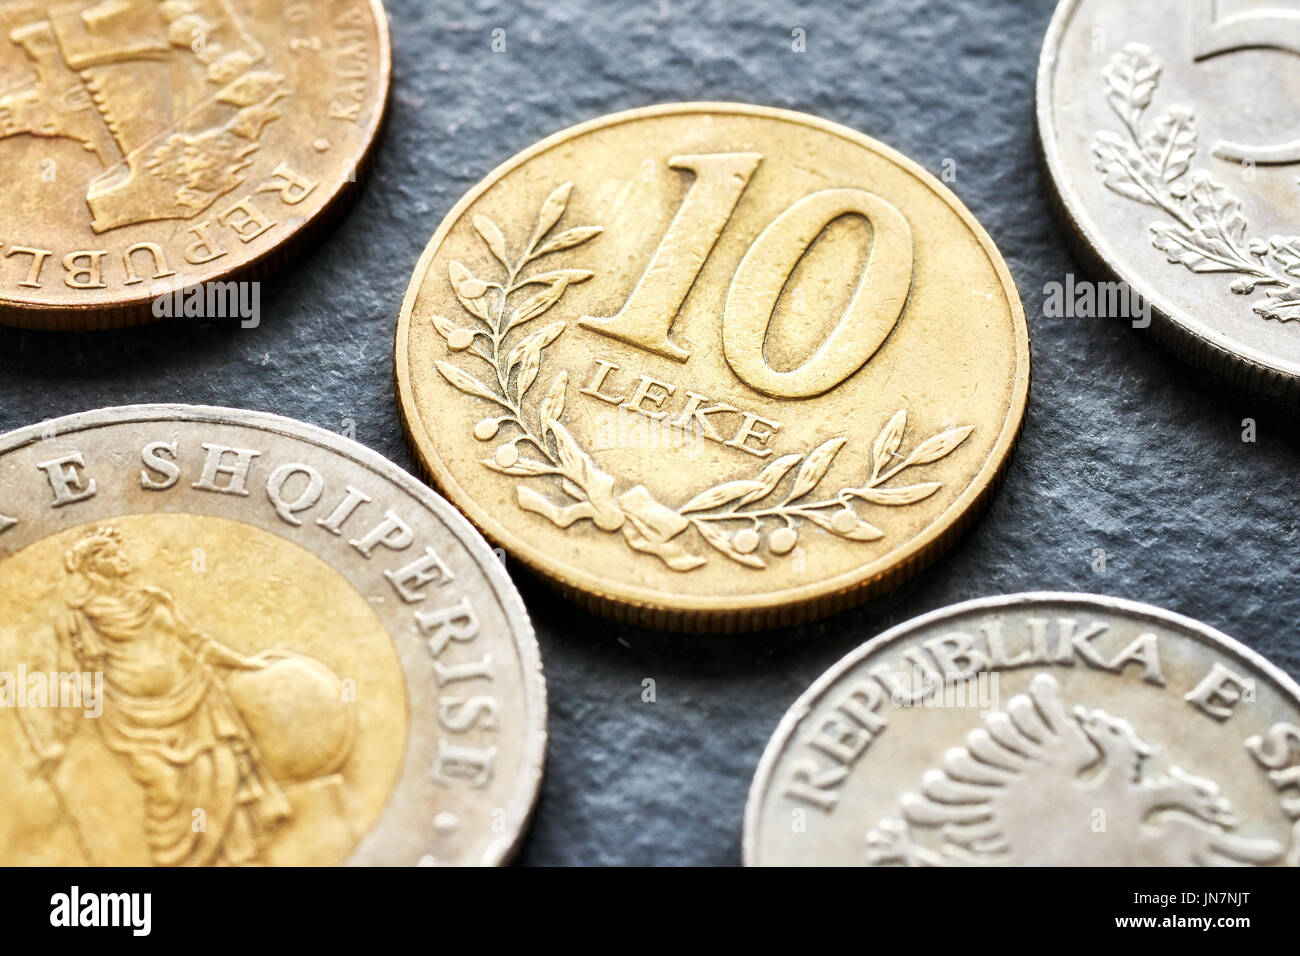 Close up picture of Albanian lek coins, shallow depth of field. - Stock Image